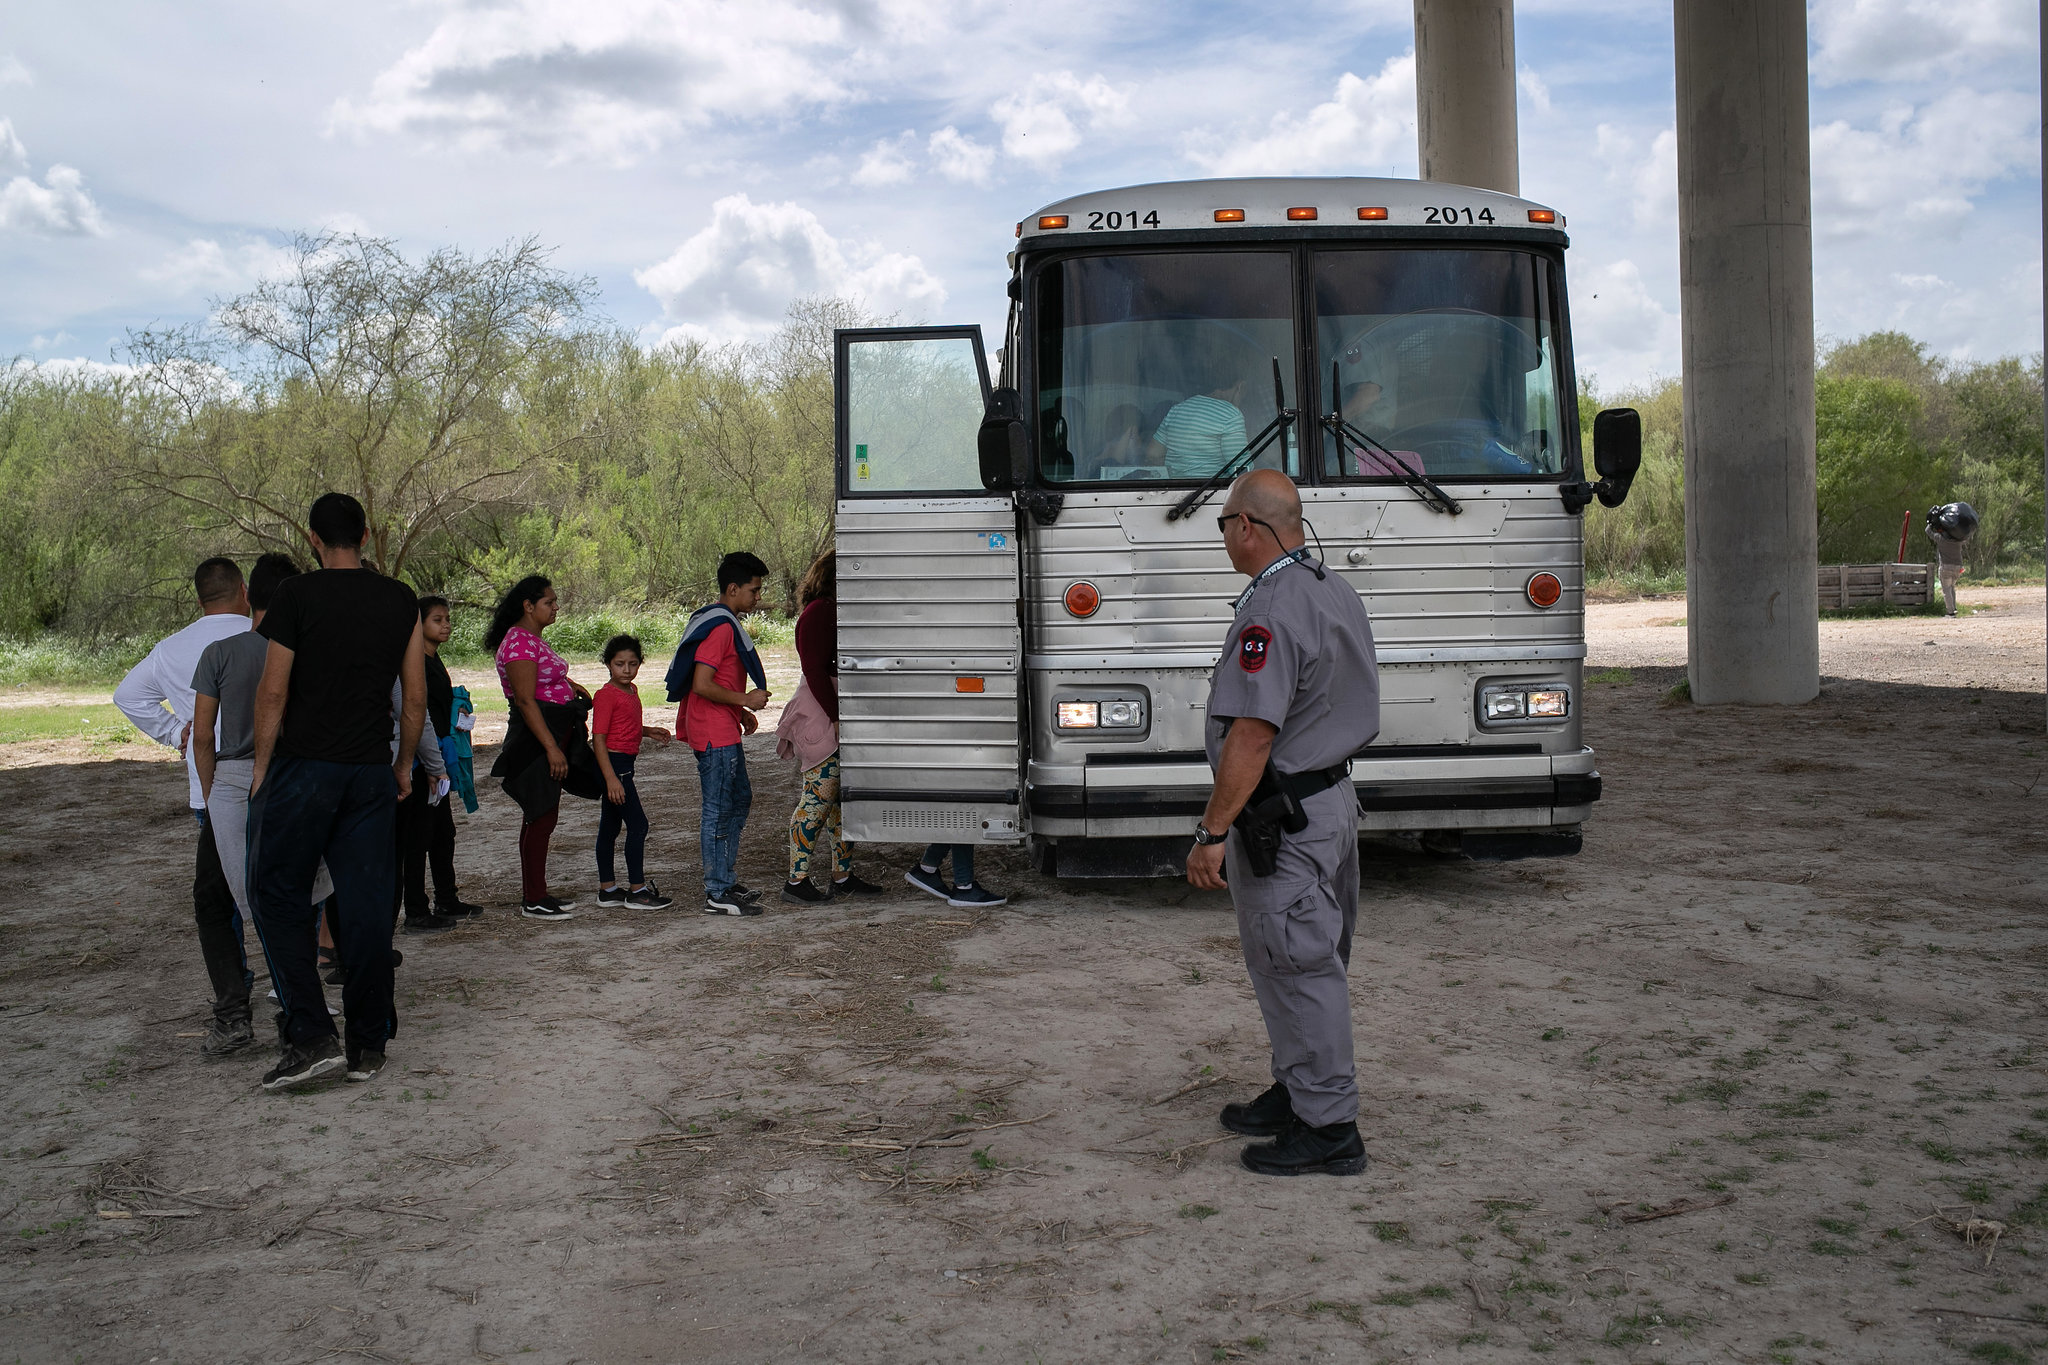 Migrants were driven to a processing center after they were taken into custody by Border Patrol agents earlier this month. Credit John Moore/Getty Images